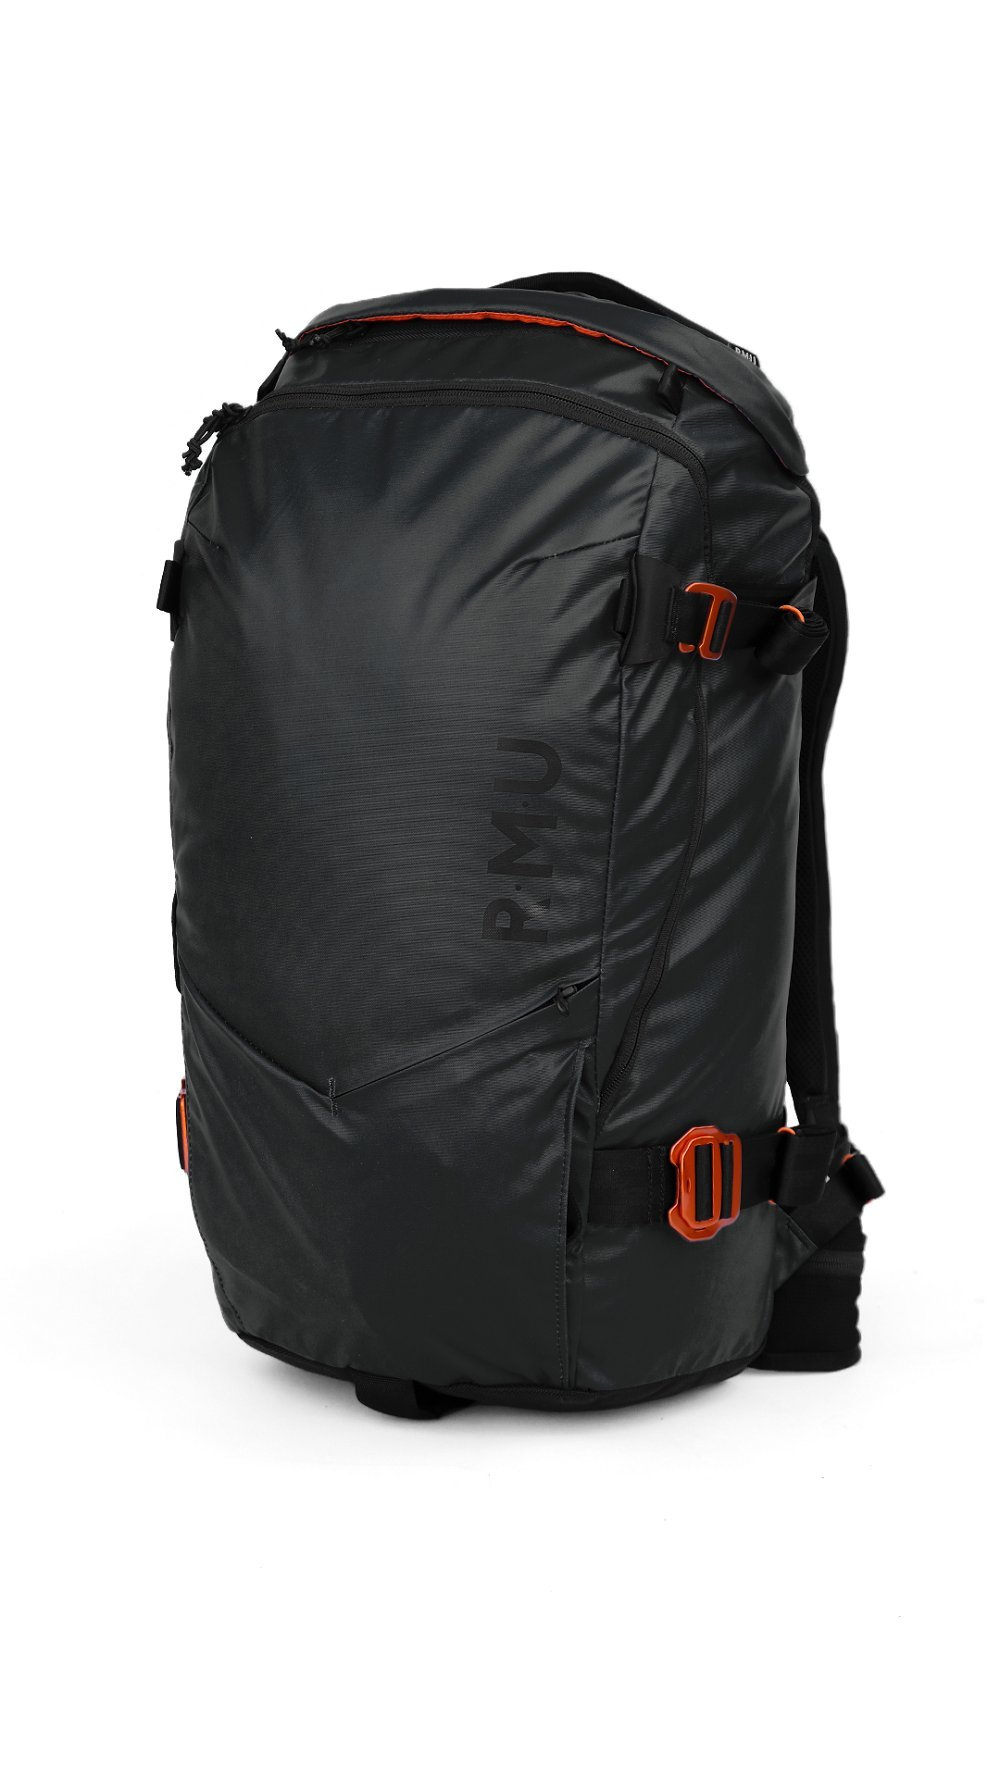 RMU Core Pack (Black, 35)